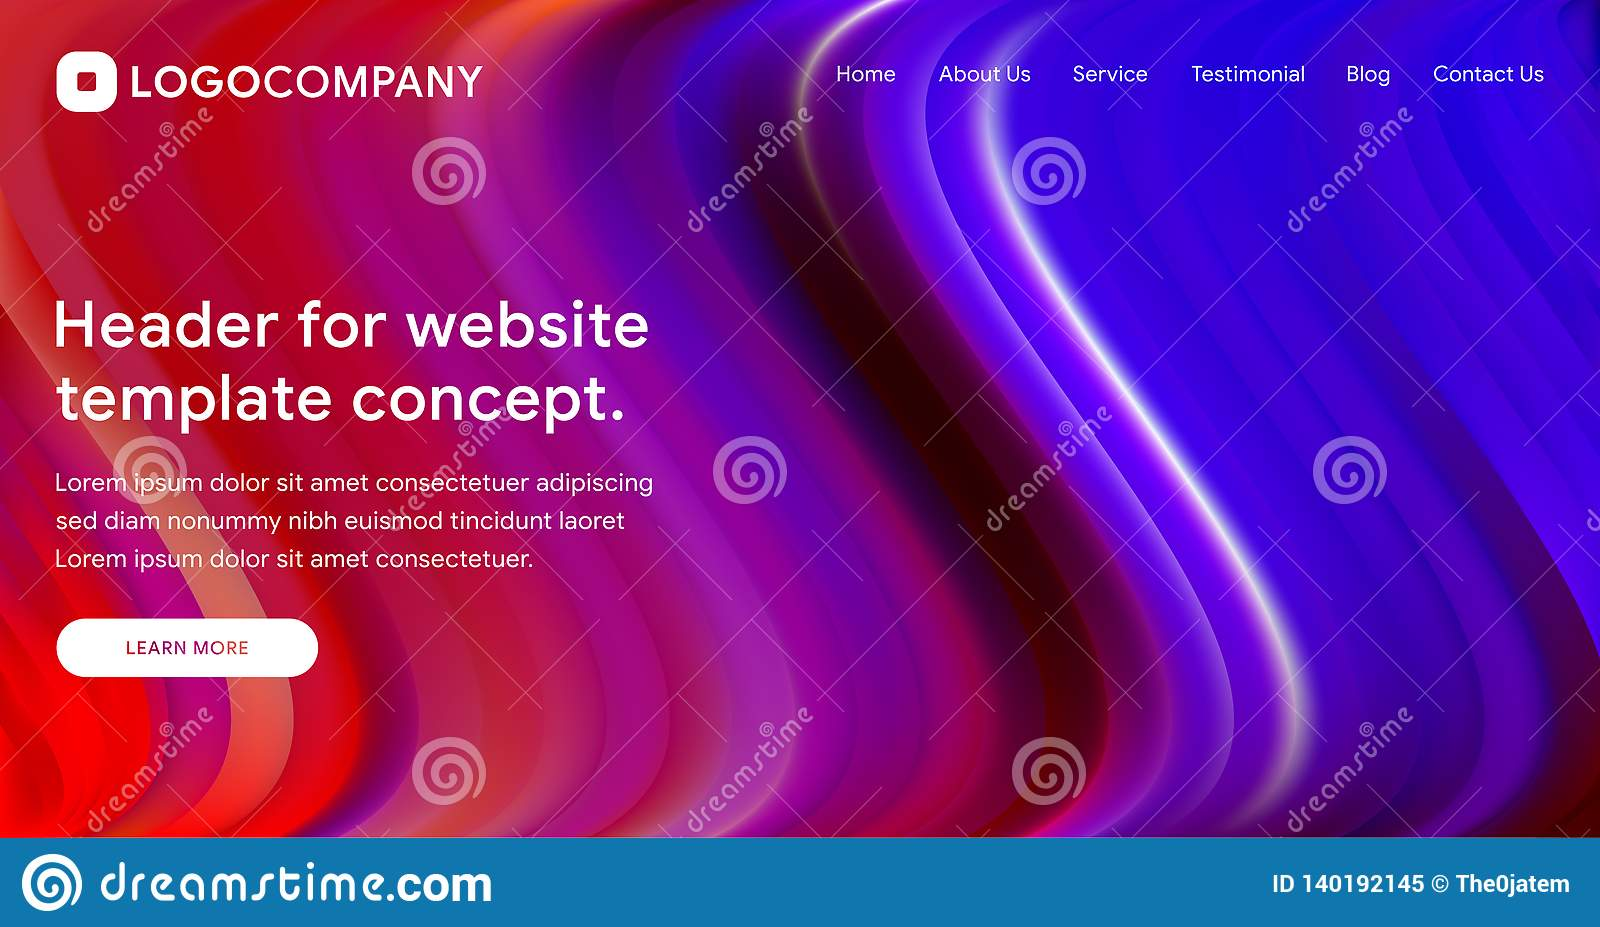 Responsive Landing Page Or Web Template Design With 3D